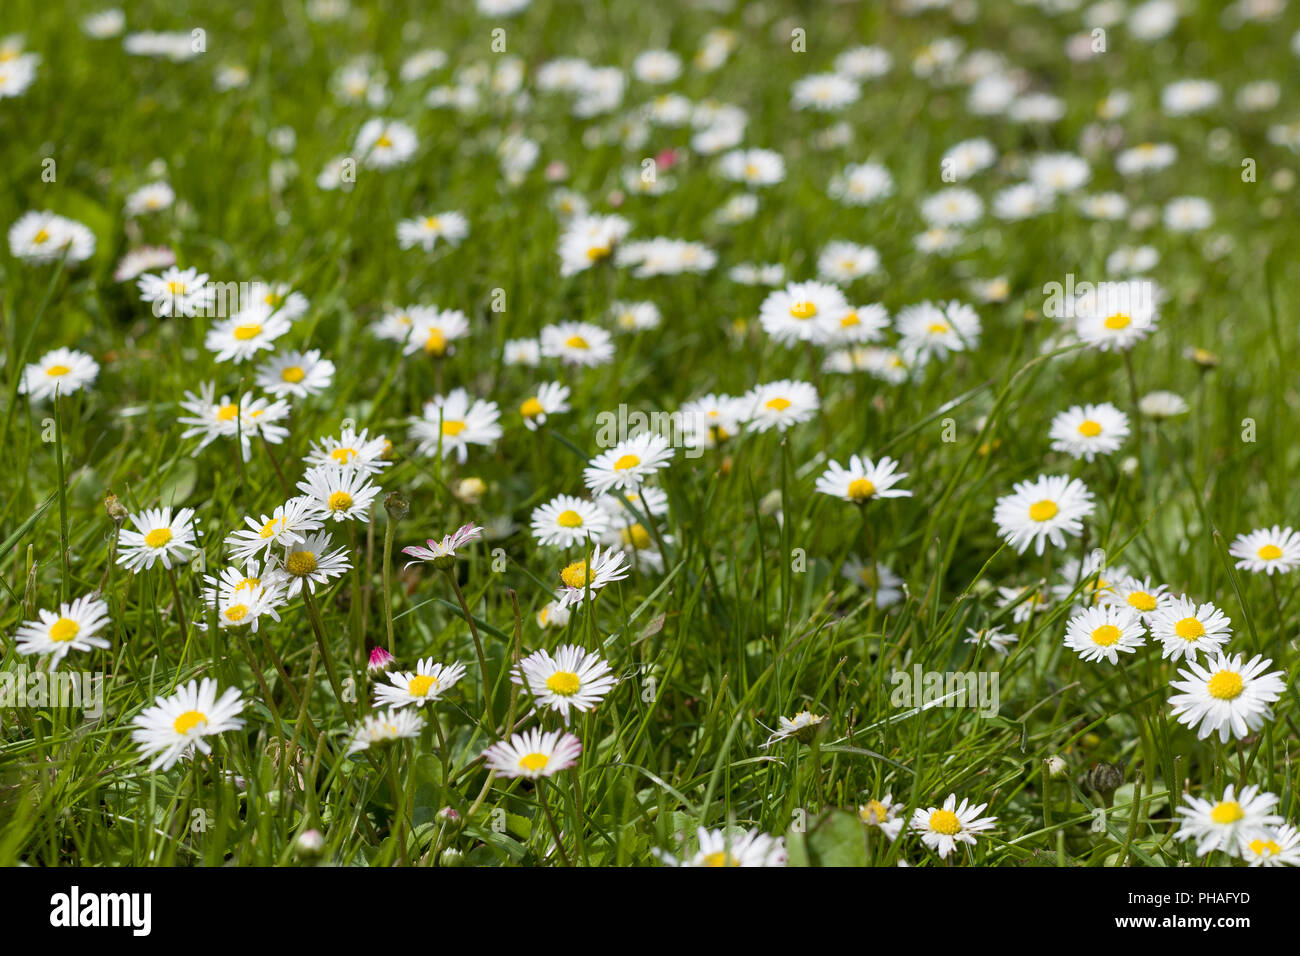 Beautiful Blooming Daisy Field Spring Easter Flowers Daisy Flower